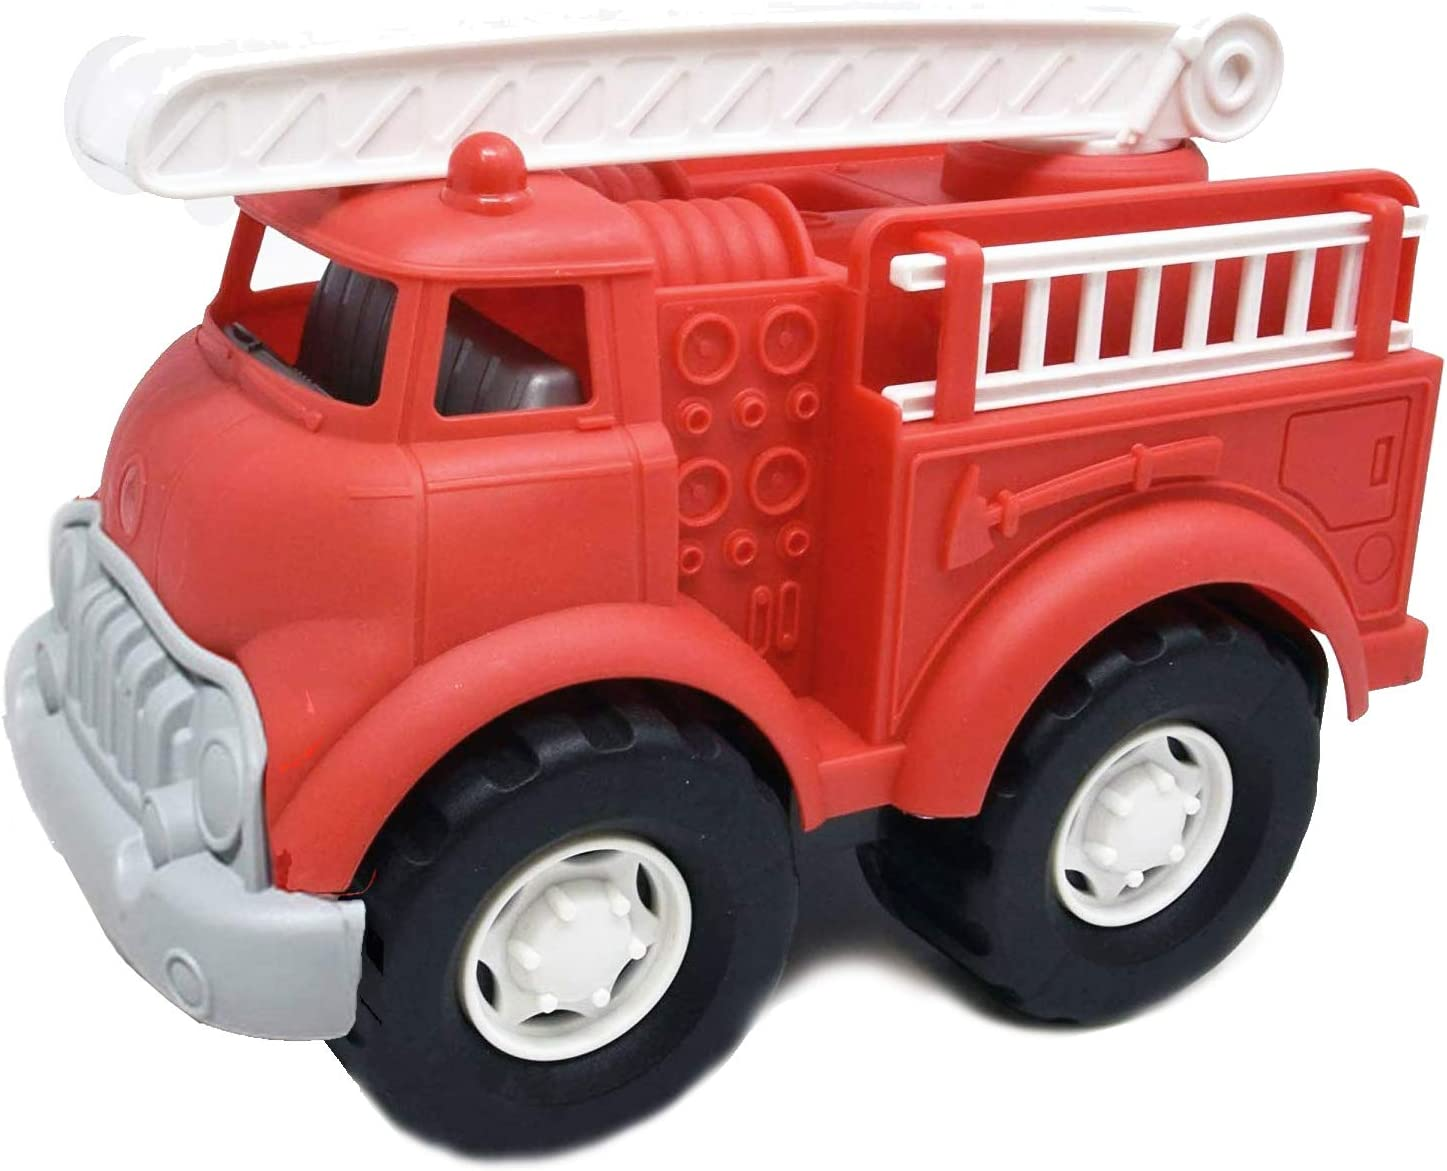 Big Louisville-Jefferson County Mall Oklahoma City Mall Plastic Toy Fire Truck for Girls Boys Toddlers Fir and Red